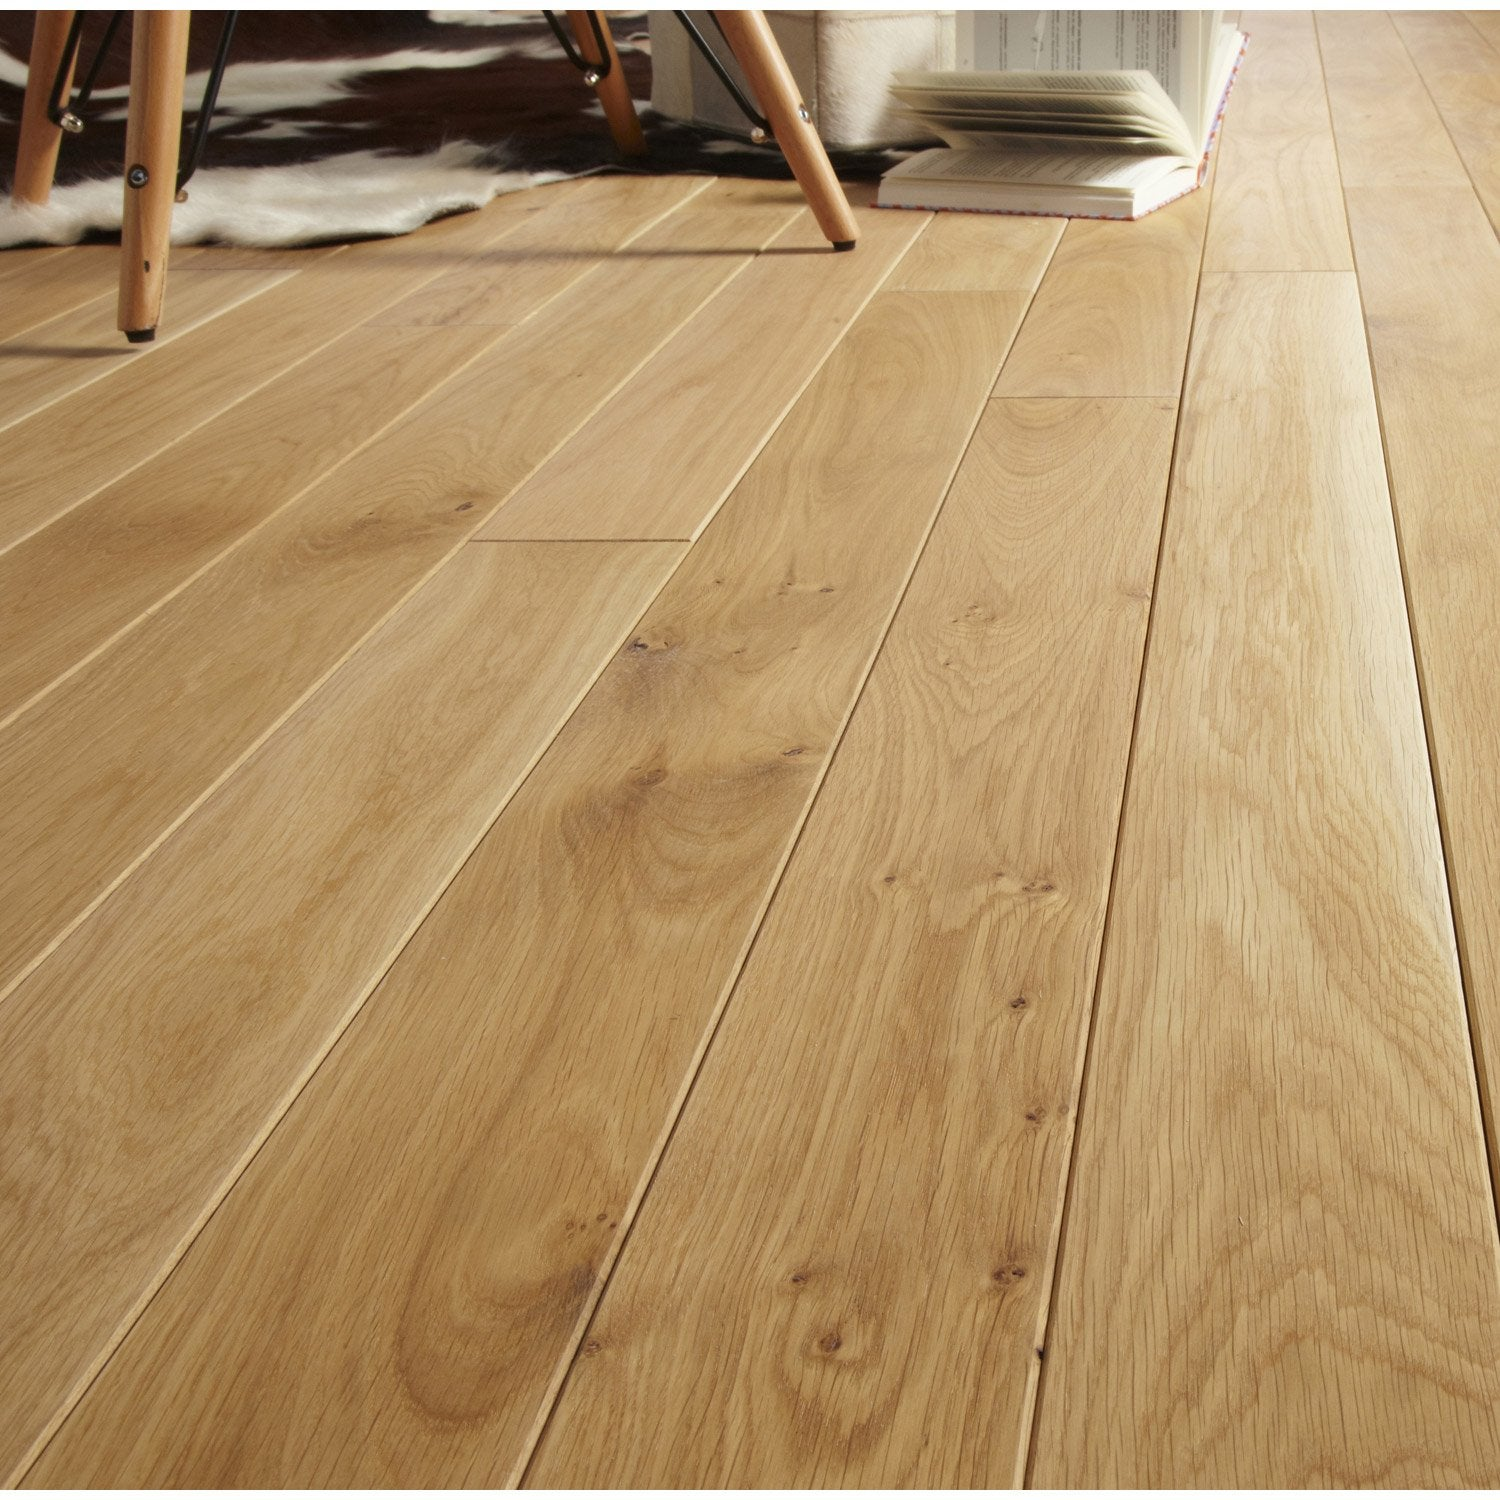 Parquet Massif Chene Blond Huile L Artens Massif Clic Leroy Merlin